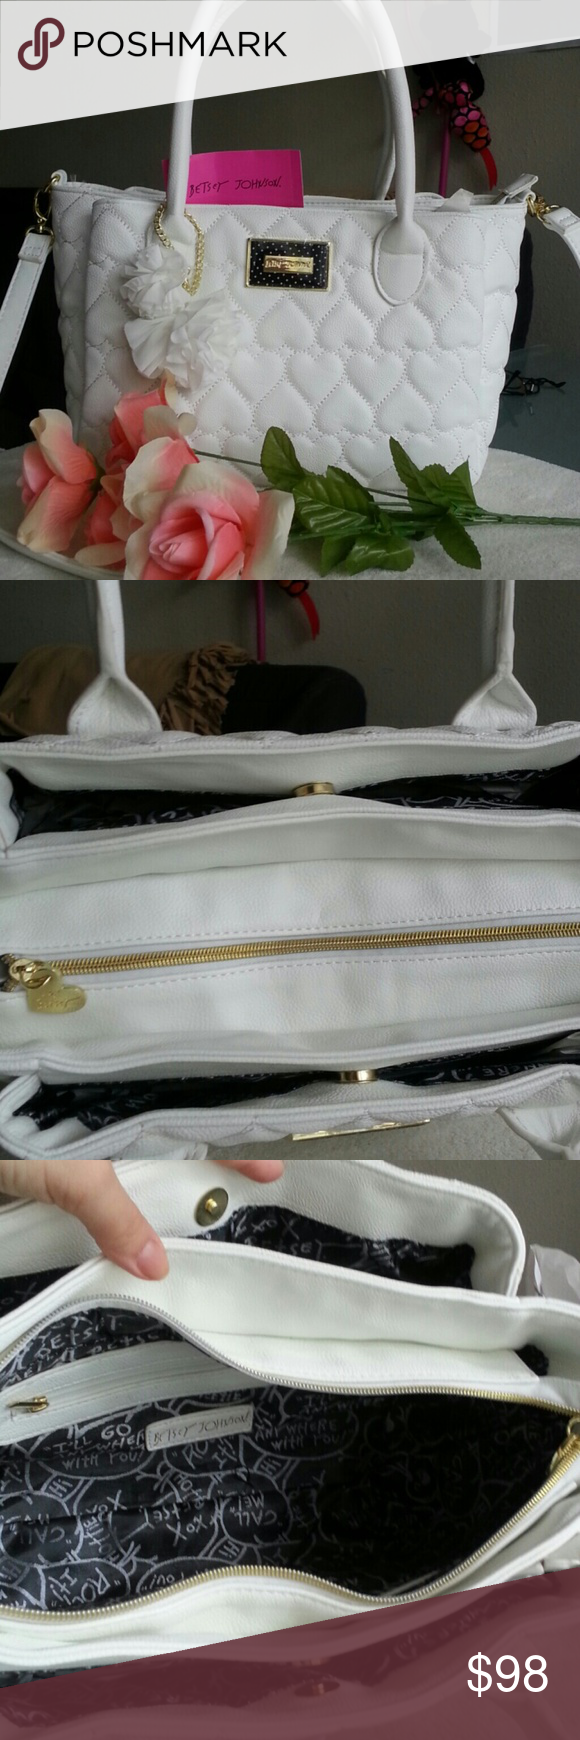 """NWT Betsey Johnson White Satchel It has removeable crossbody strap too. Theree compartment. Measurements 8.5"""" x 6.5"""" x 12"""" . Strap drop 7"""". Crossbody drop 24"""". Retail $98 Betsey Johnson Bags Satchels"""